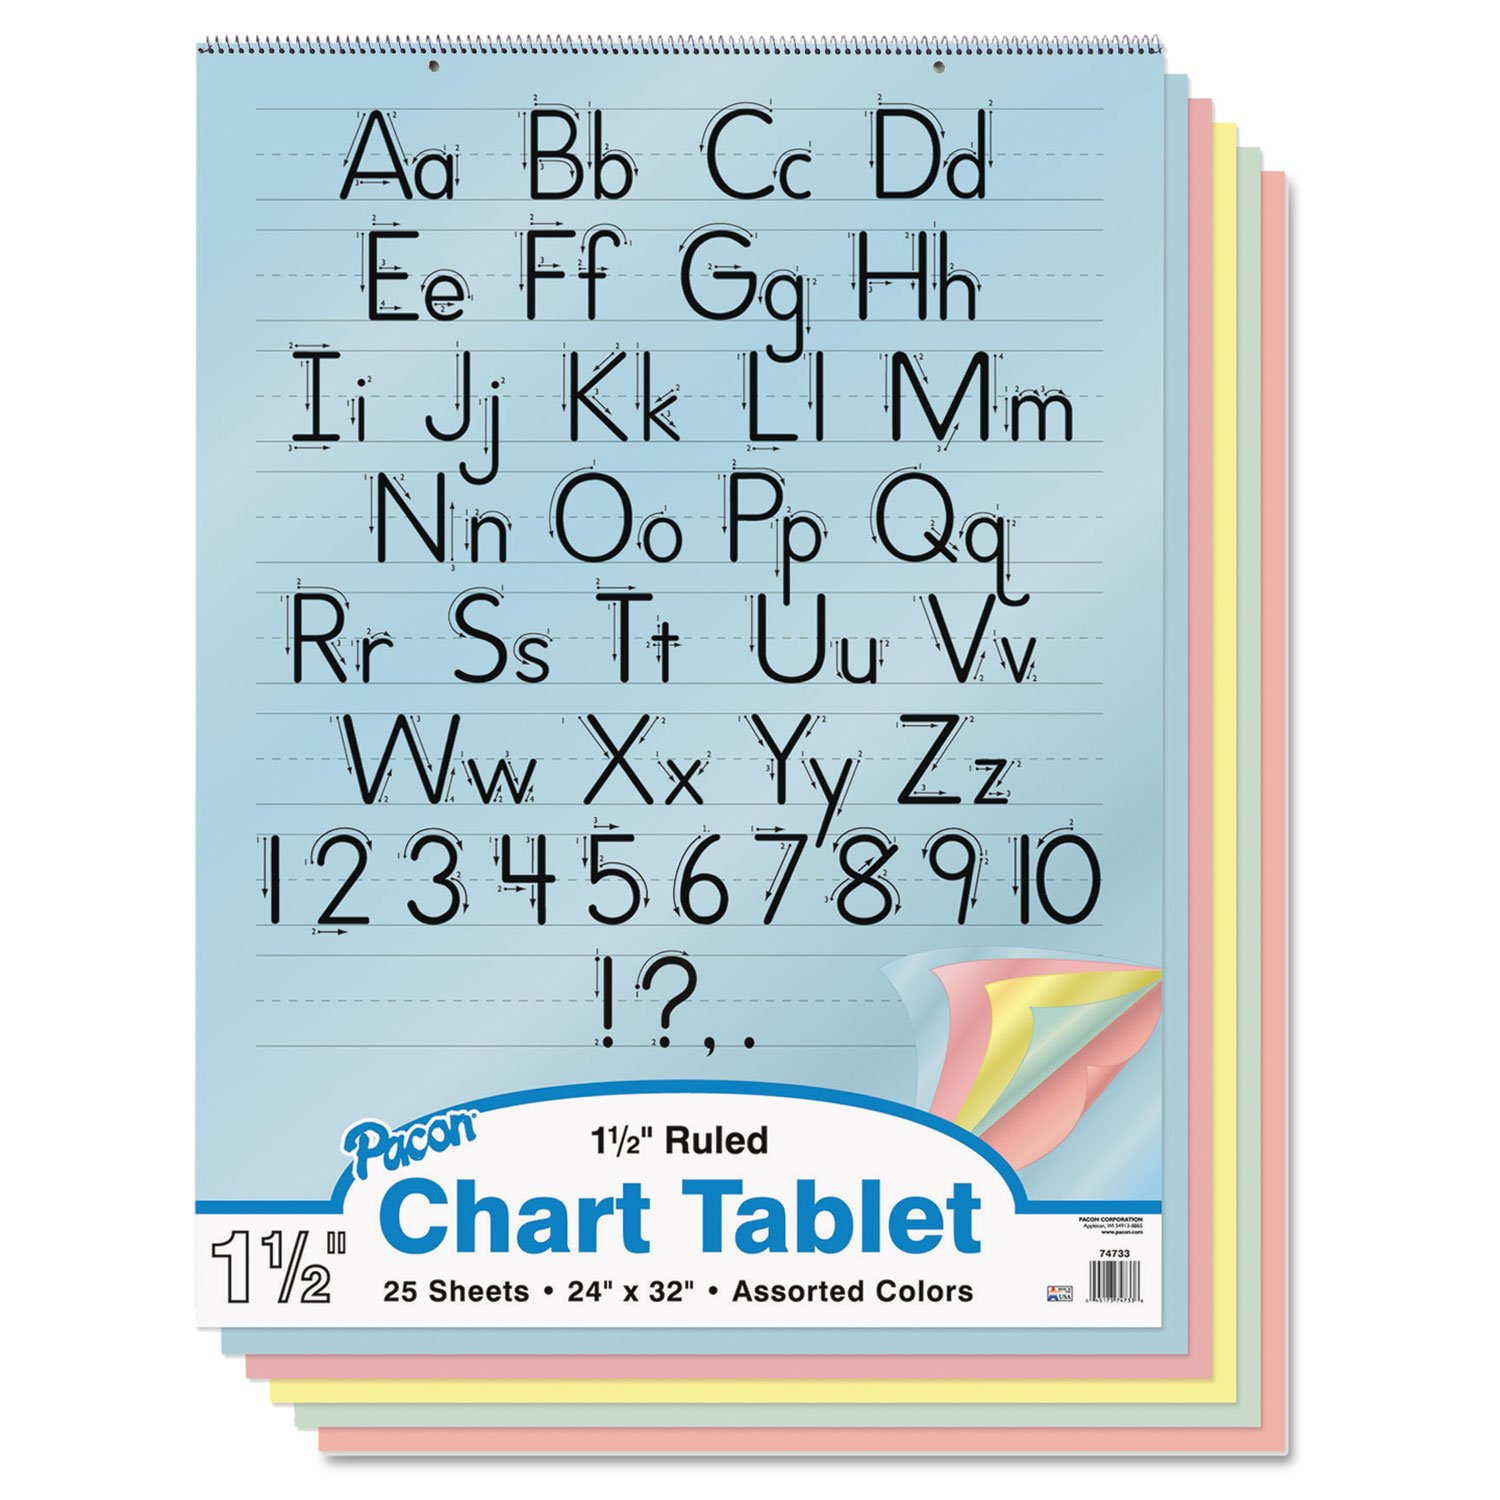 Amazon pacon 74733 colored chart tablet ruled spiralbound amazon pacon 74733 colored chart tablet ruled spiralbound 24 x 32 assorted colors chart paper office products nvjuhfo Image collections